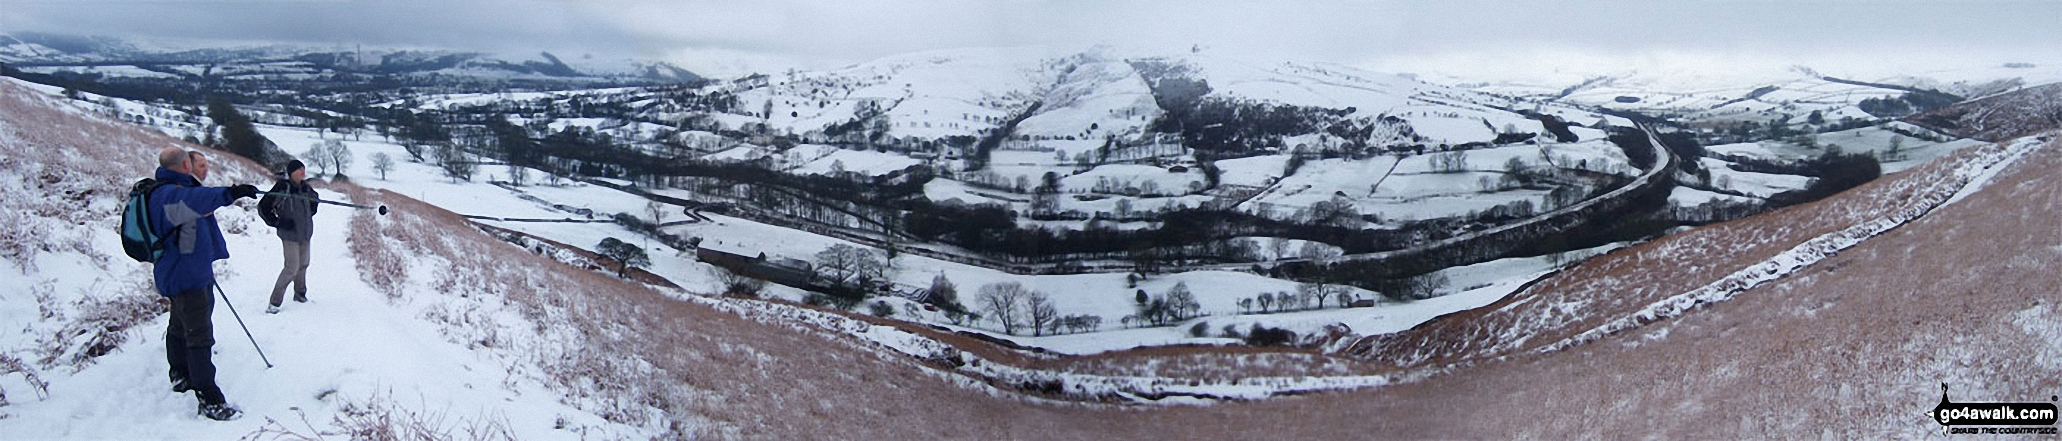 Shatton Edge, Lose Hill (Ward's Piece) and The Vale of Edale from Hope Bank, Winhill Pike (Win Hill) under a blanket of heavy snow